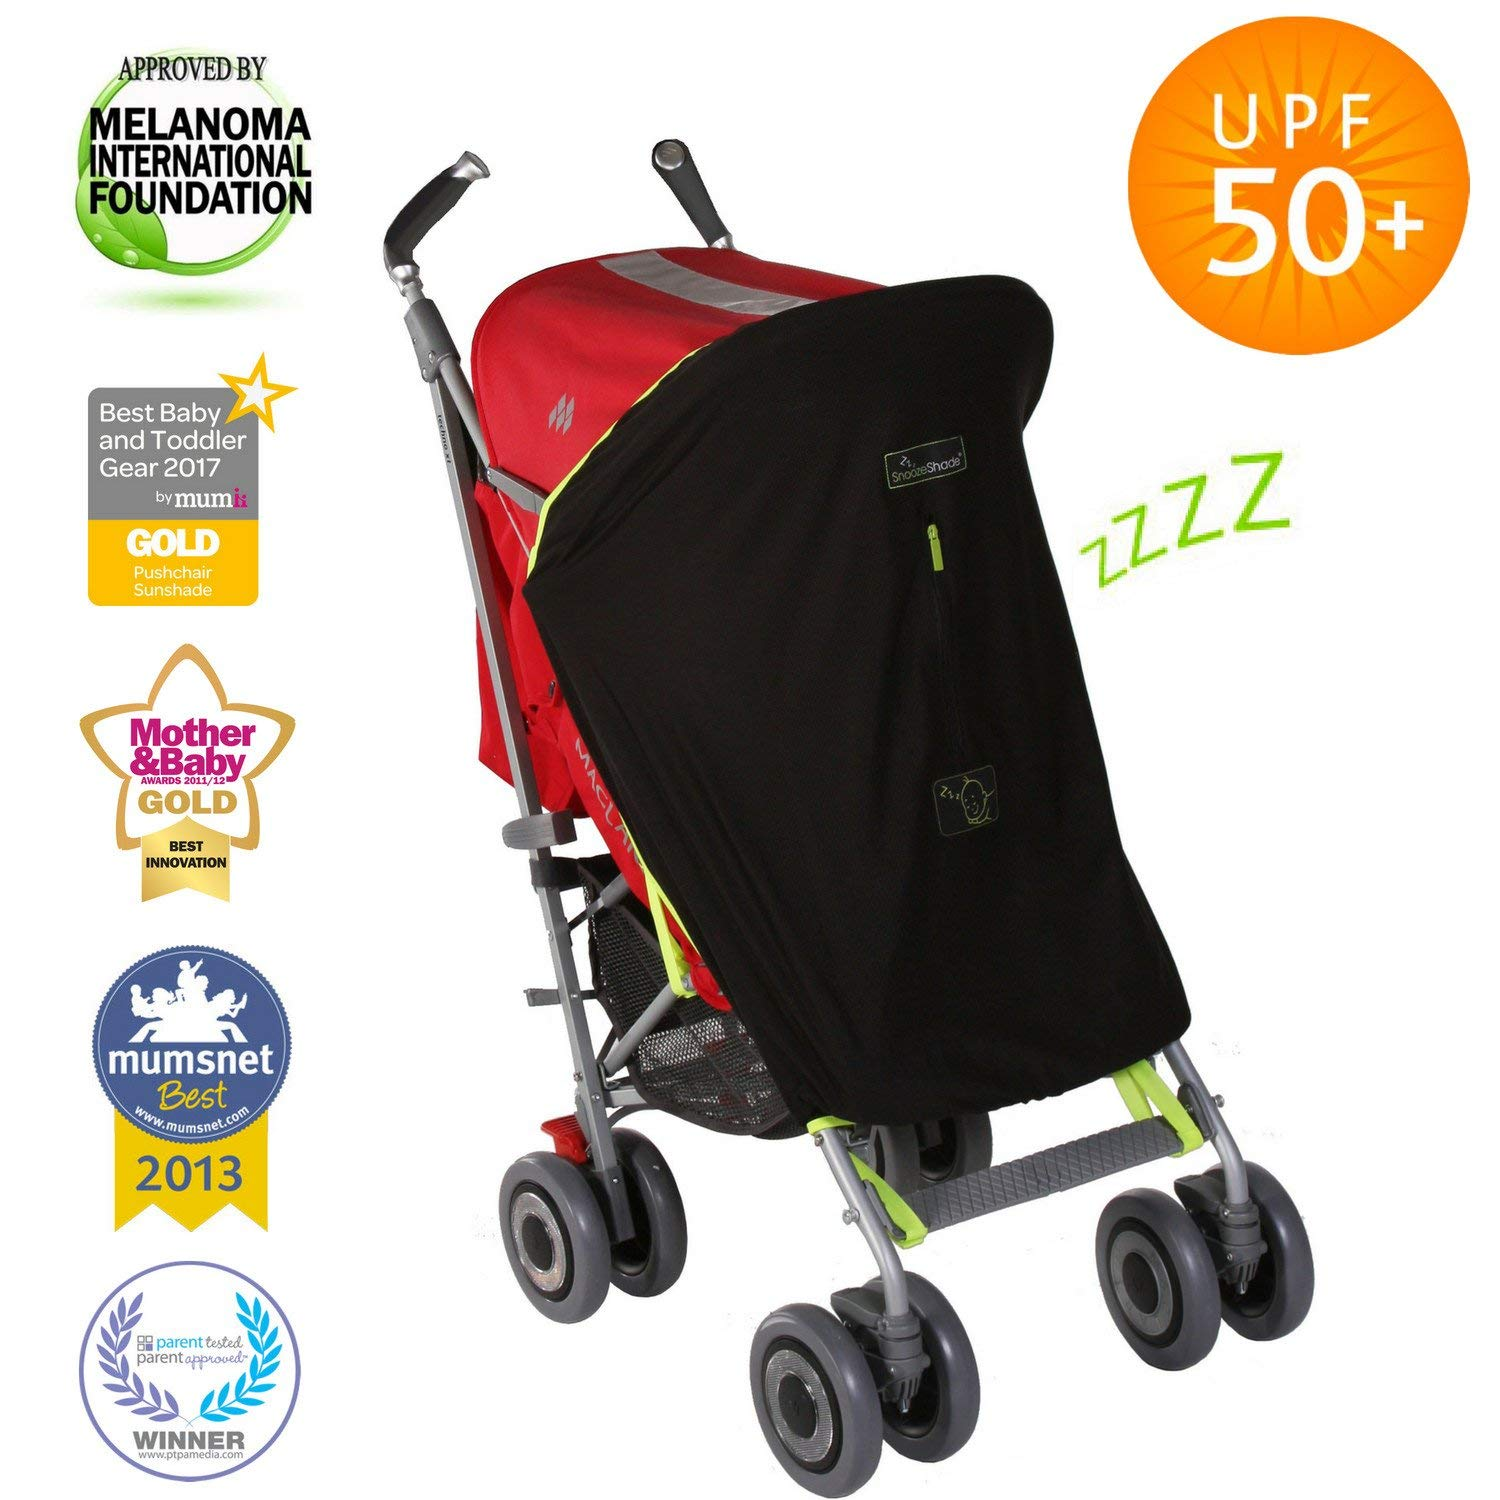 Stroller Cover | Baby Sun Shade and Blackout Blind for Strollers | Stops 99% of The Sun's Rays (UPF50+) | Breathable and Universal fit | SnoozeShade Original - Best-Selling Safety Green Trim